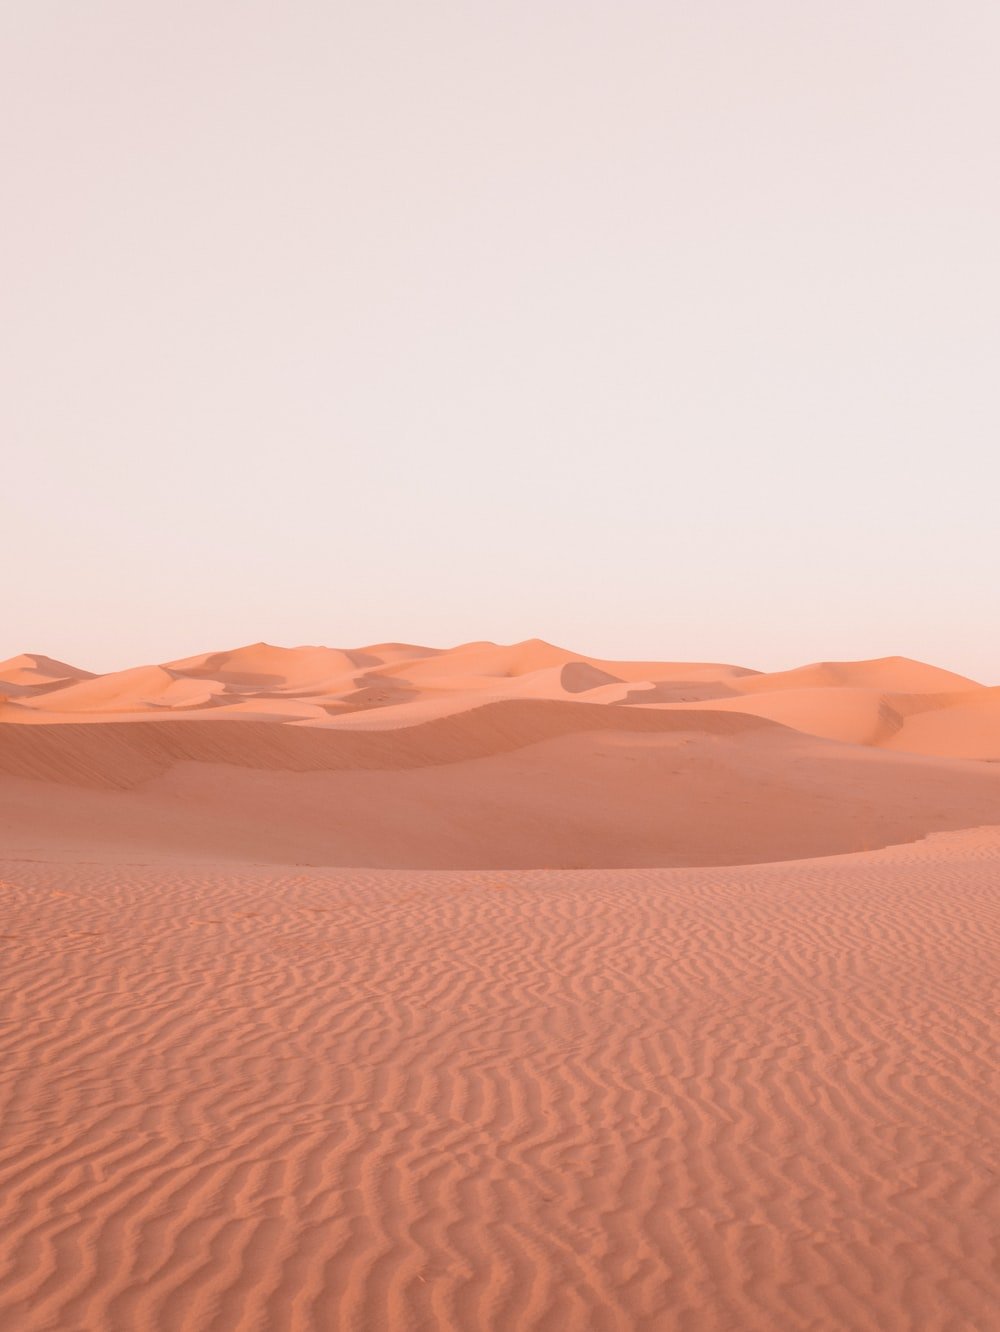 brown desert under white sky during daytime